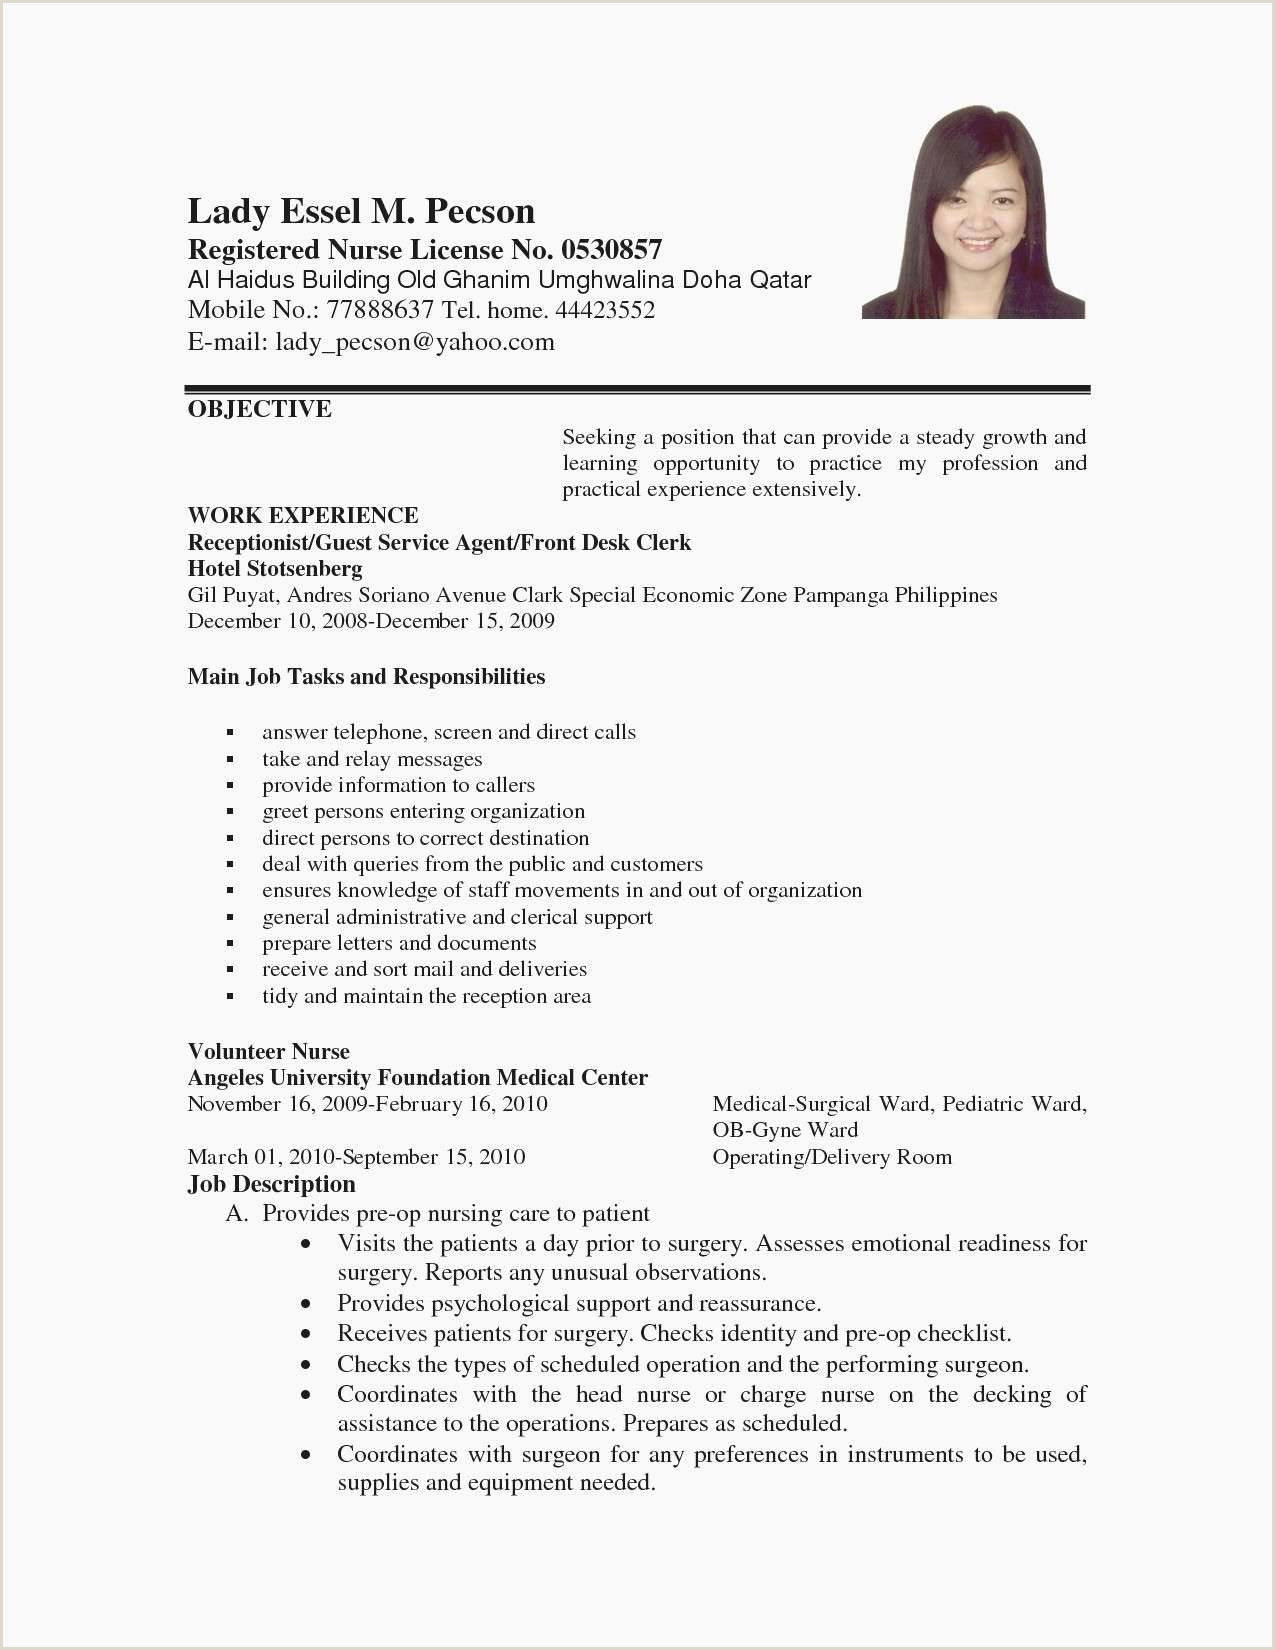 Resume format for Job Blank 41 Simple format De Cv Xenakisworld